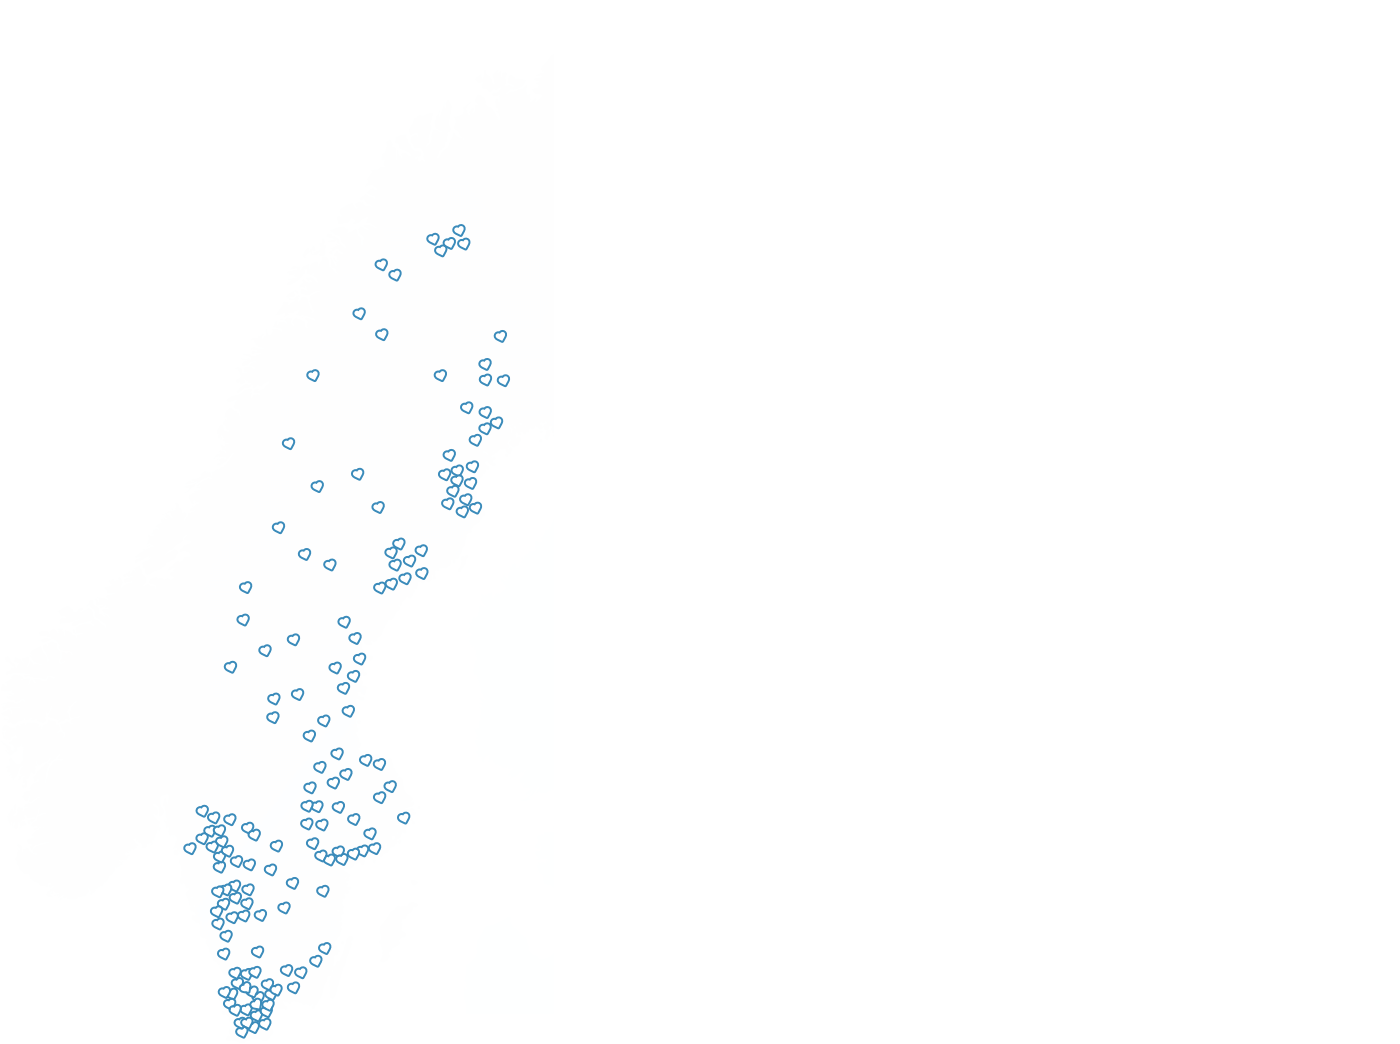 Map - layer 3